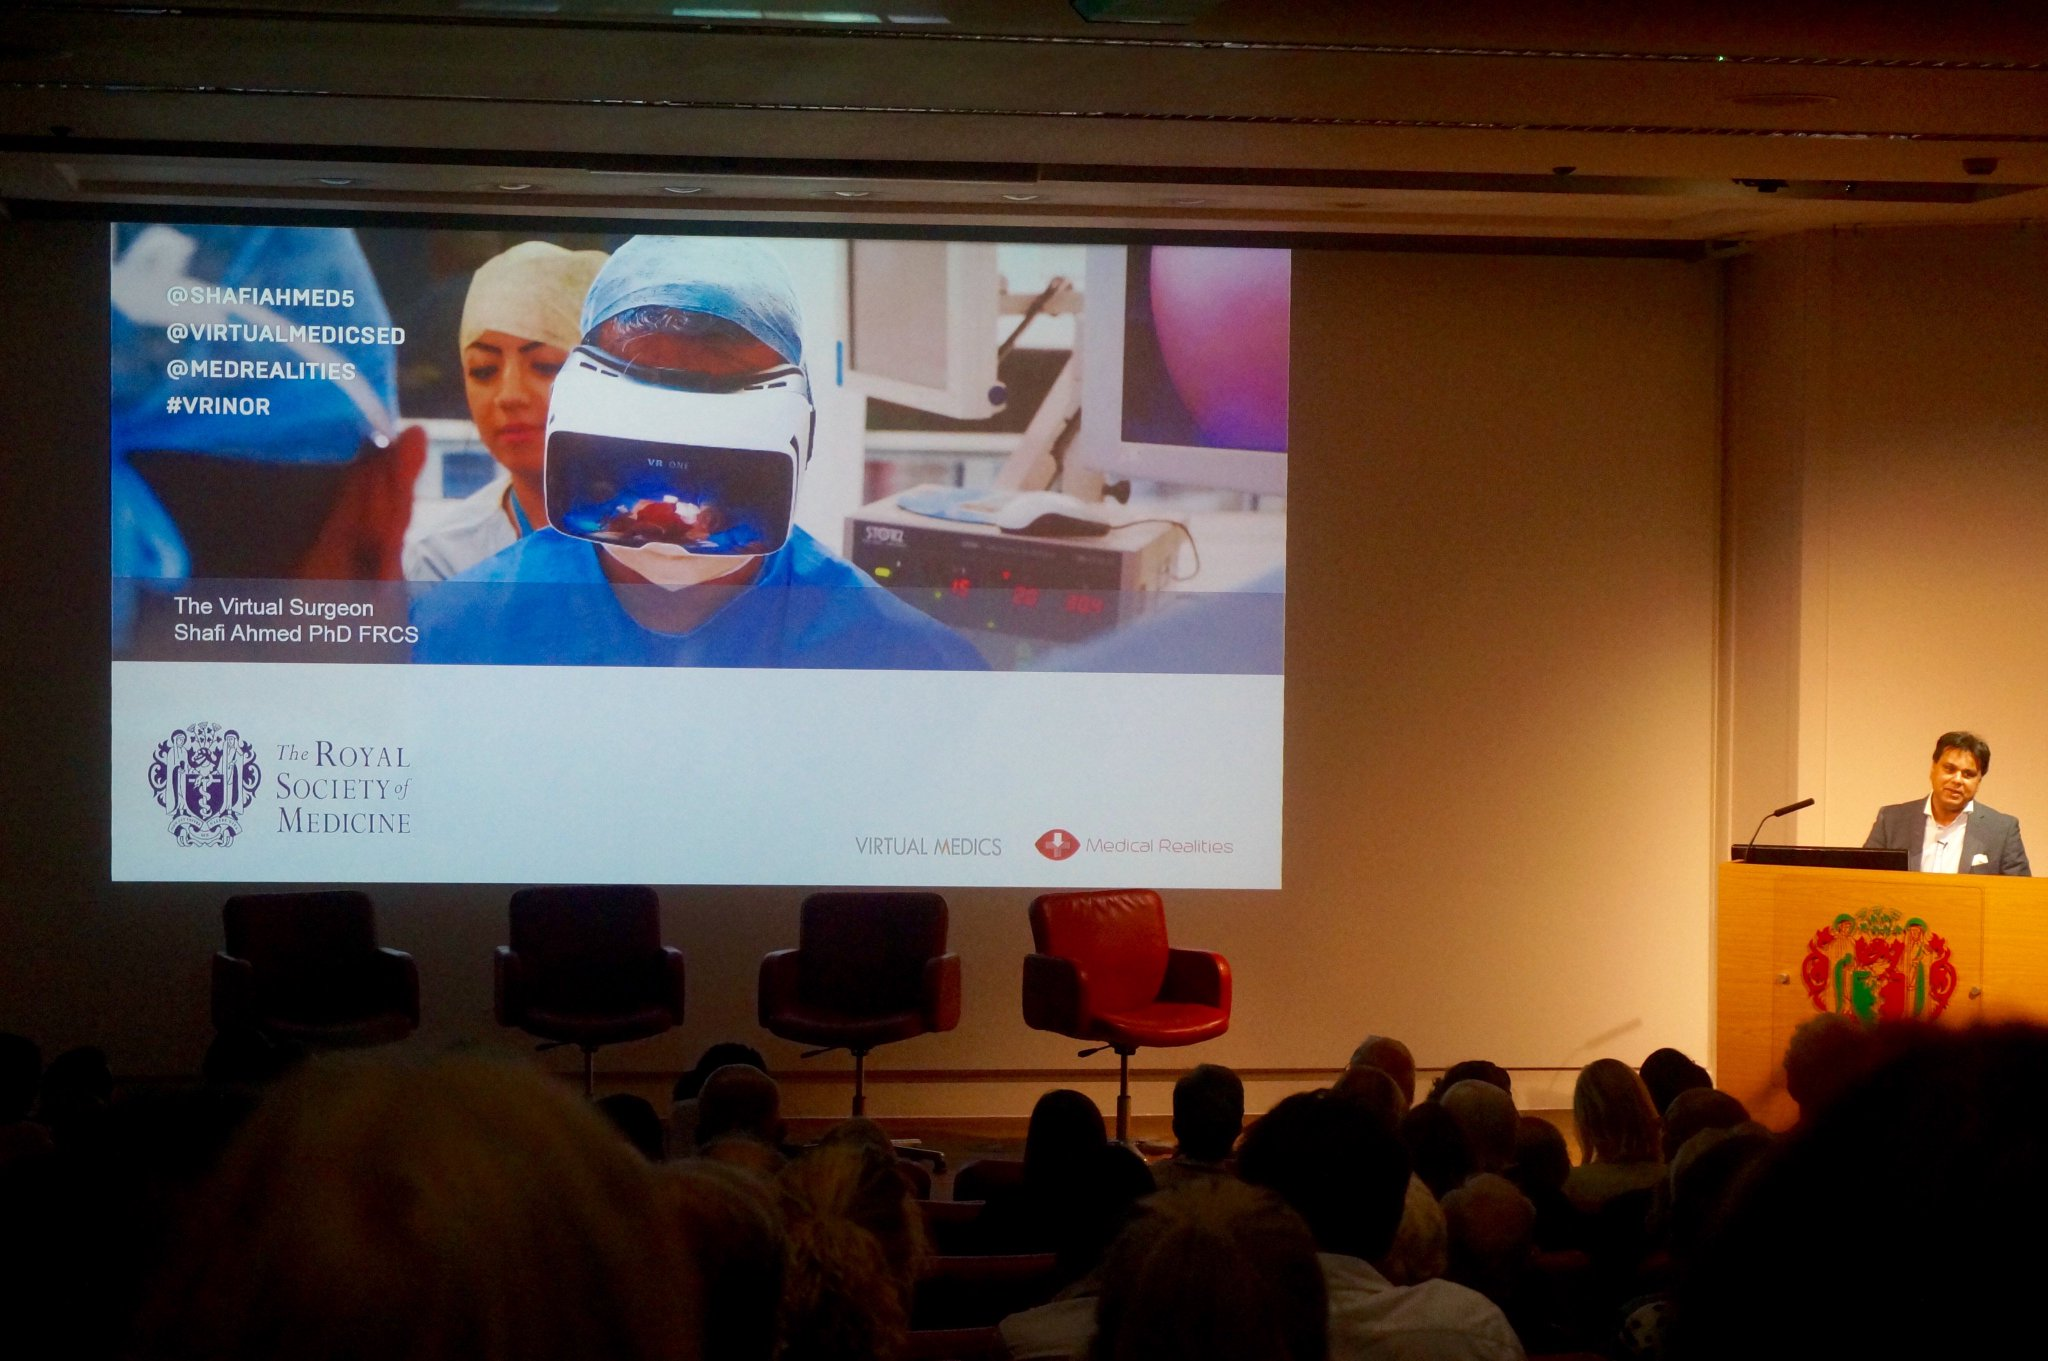 the amazing world of #virtualreality in #medicine as presented by @ShafiAhmed5 @RoySocMed #MedInnov https://t.co/N7lSWO7hXH